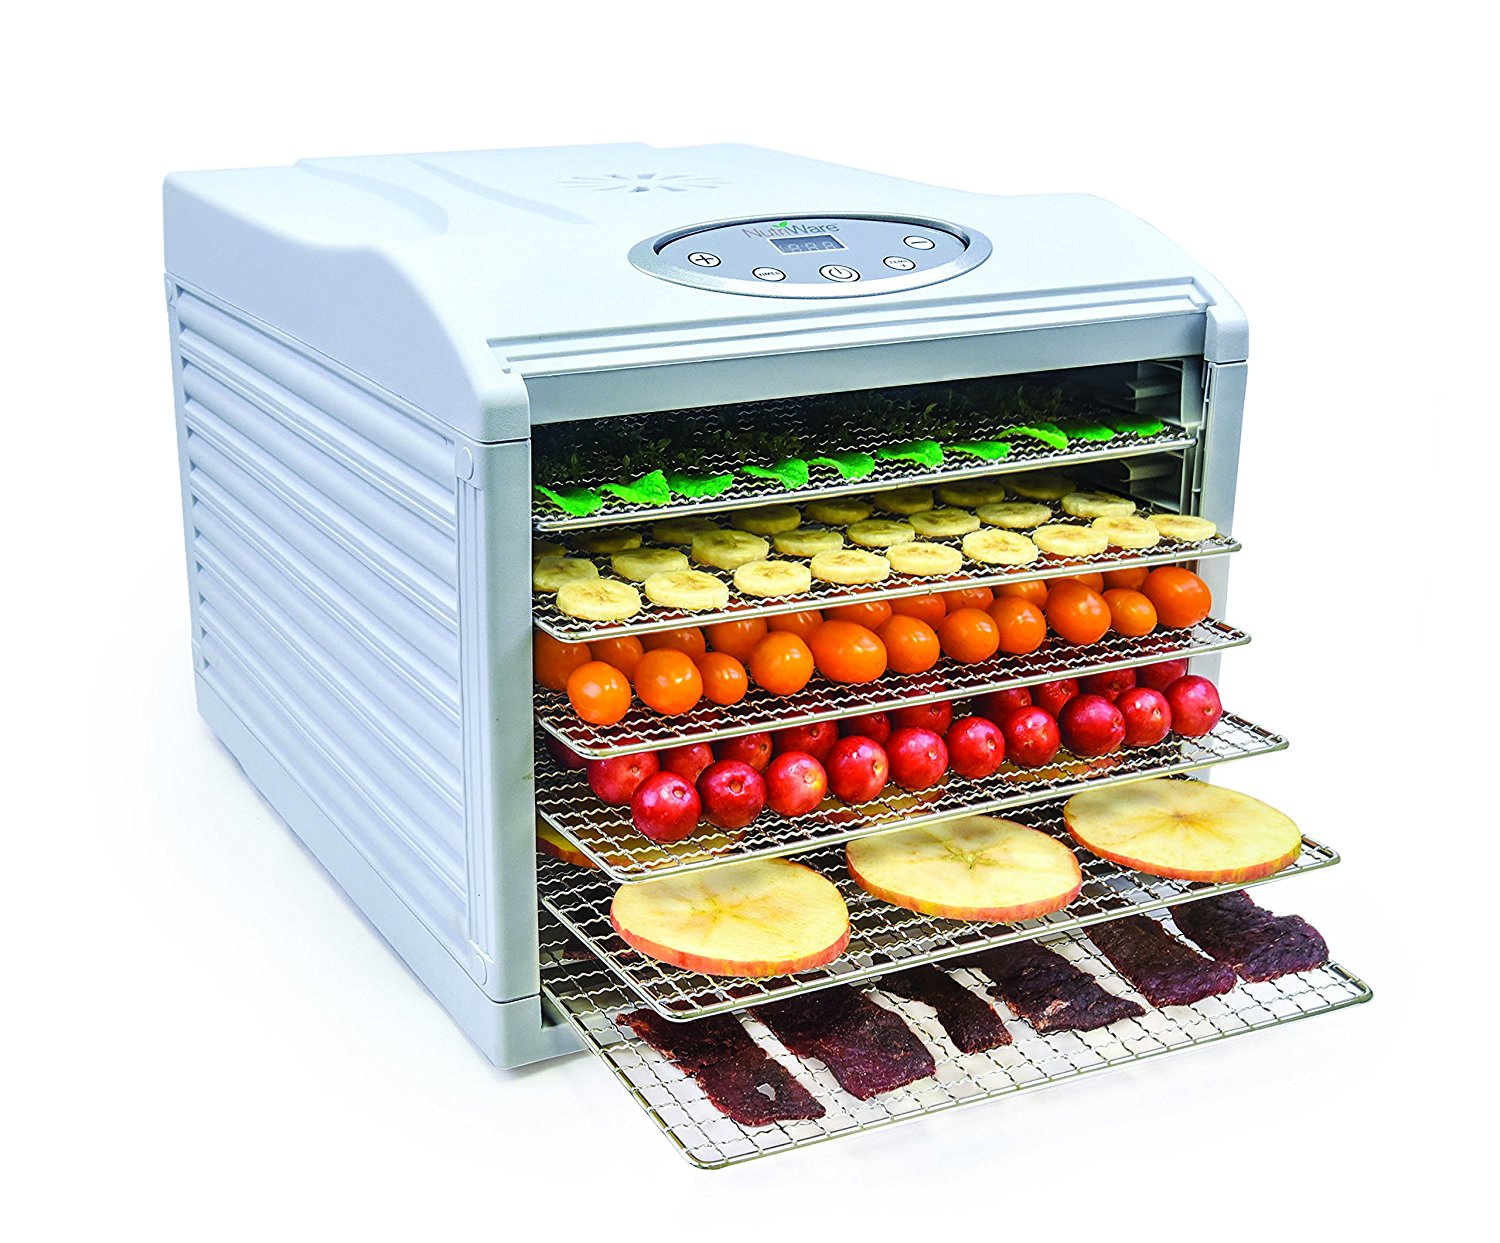 Aroma NutriWare Digital Control 6 Tray Food Dehydrator with Stainless Steel Trays